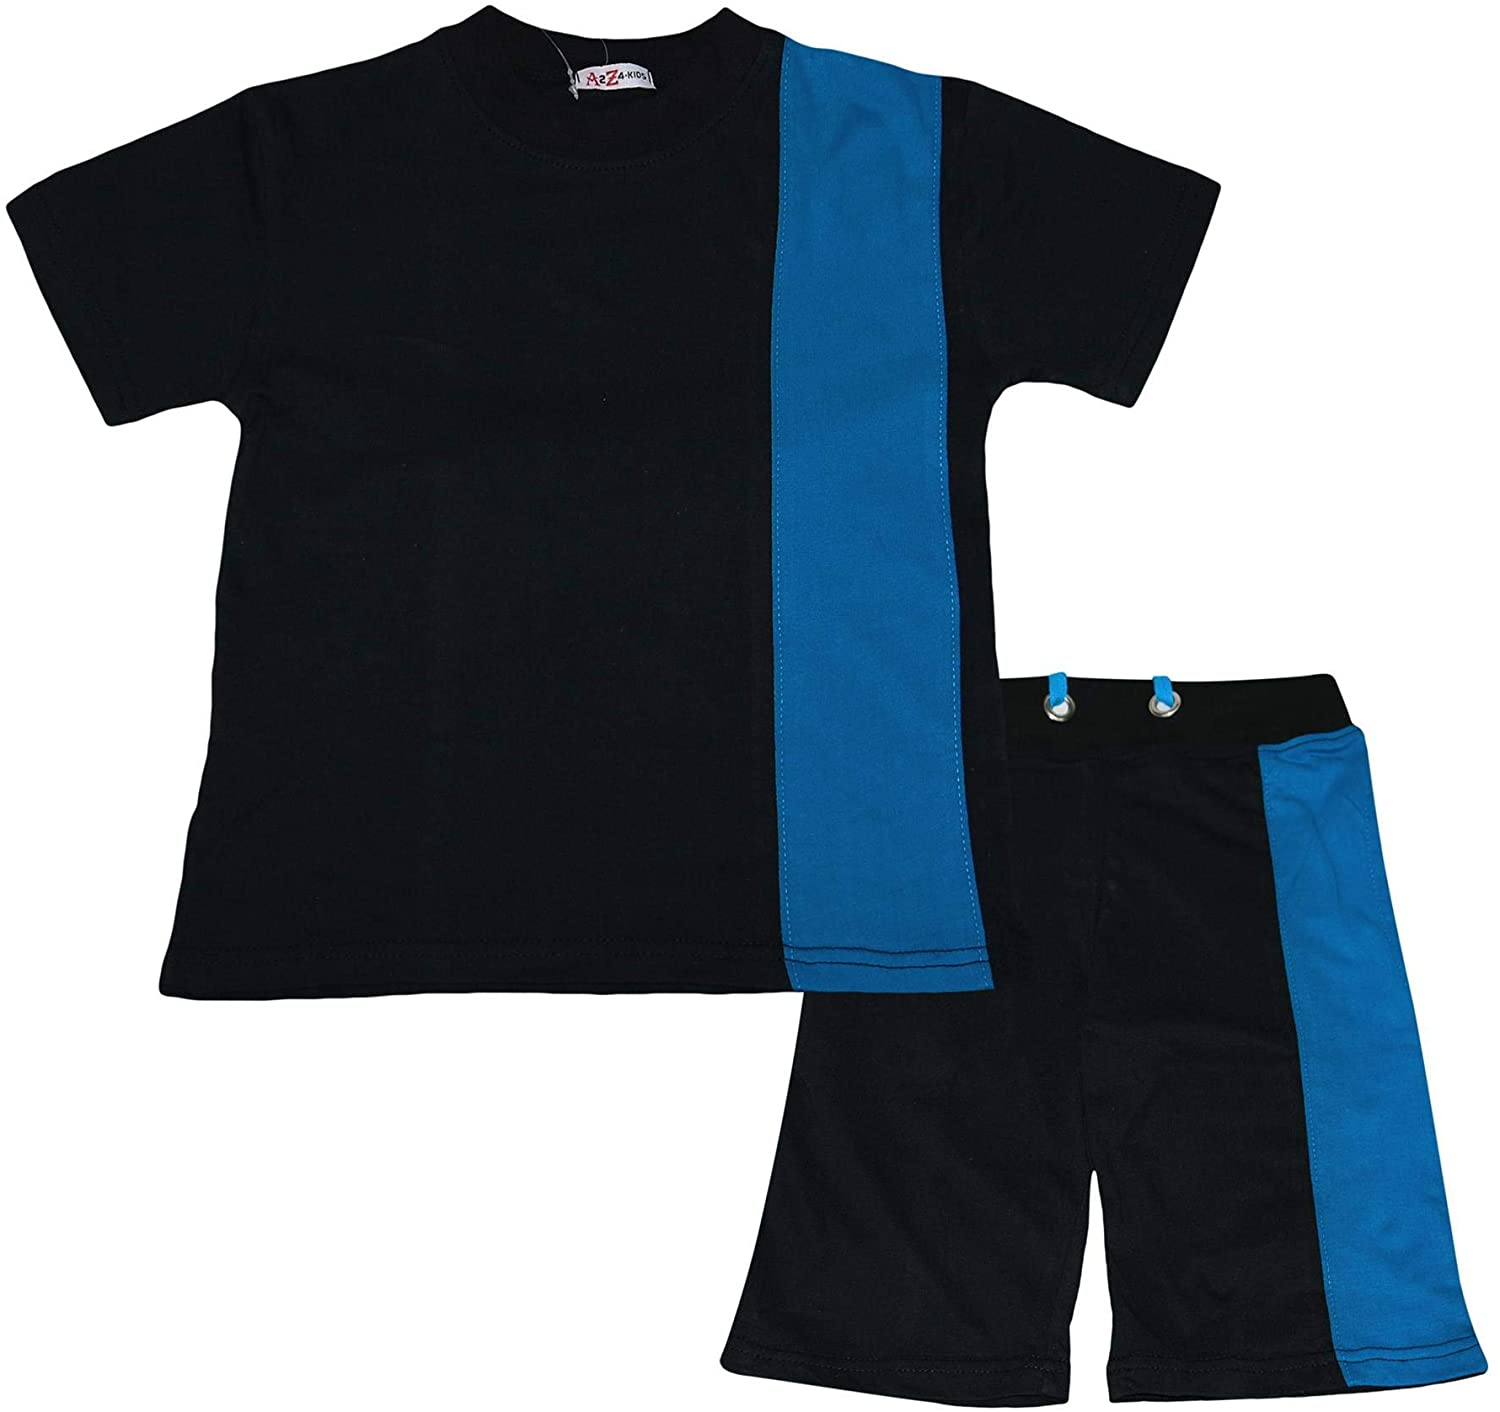 Kids Boys T Shirt Shorts 100% Cotton Contrast Panel Black Top Summer Short Sets